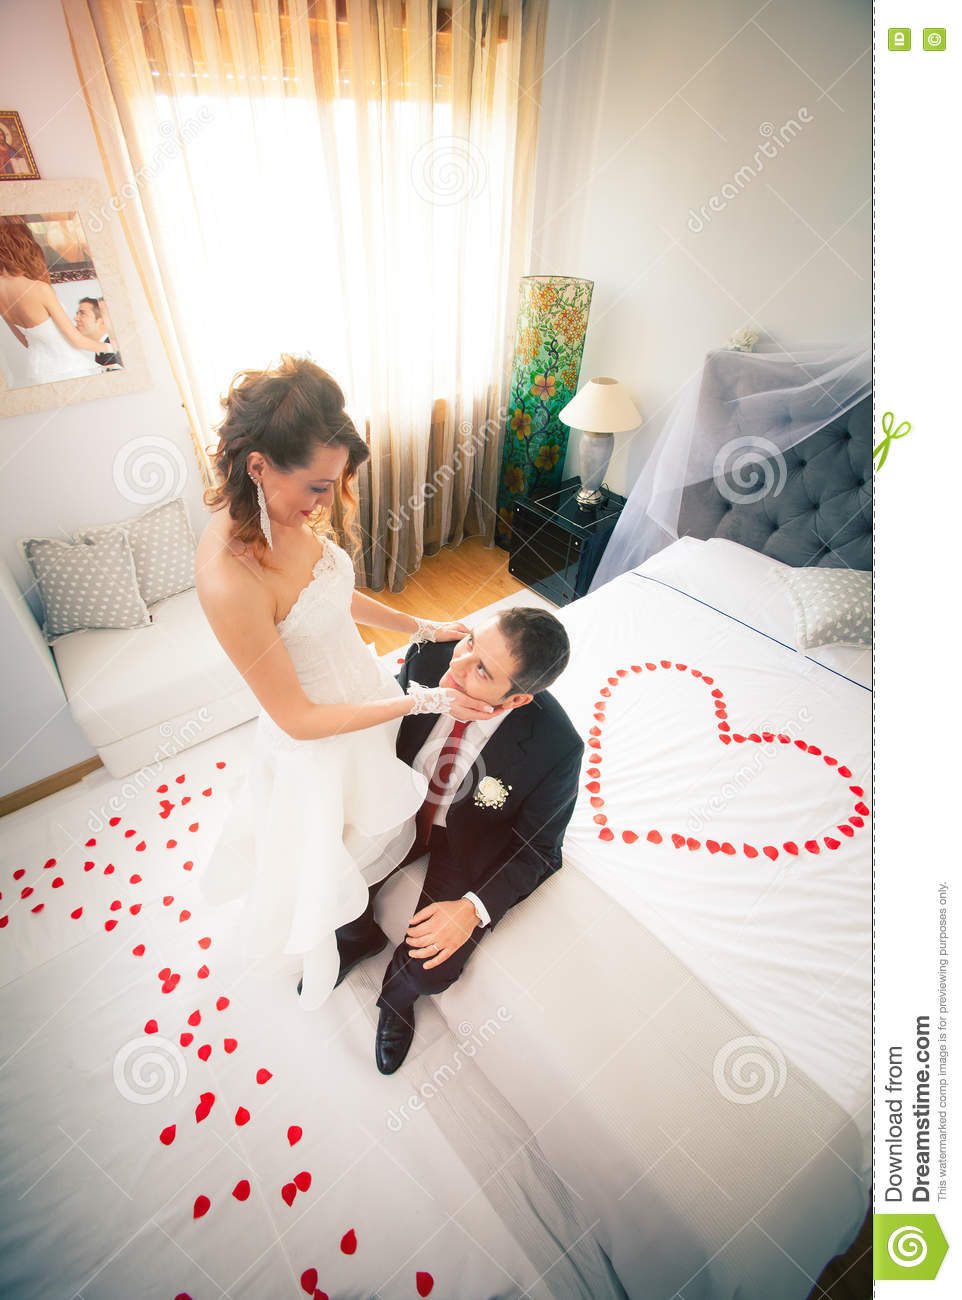 Newlyweds in bedroom with heart stock image image of for Love bedroom photo